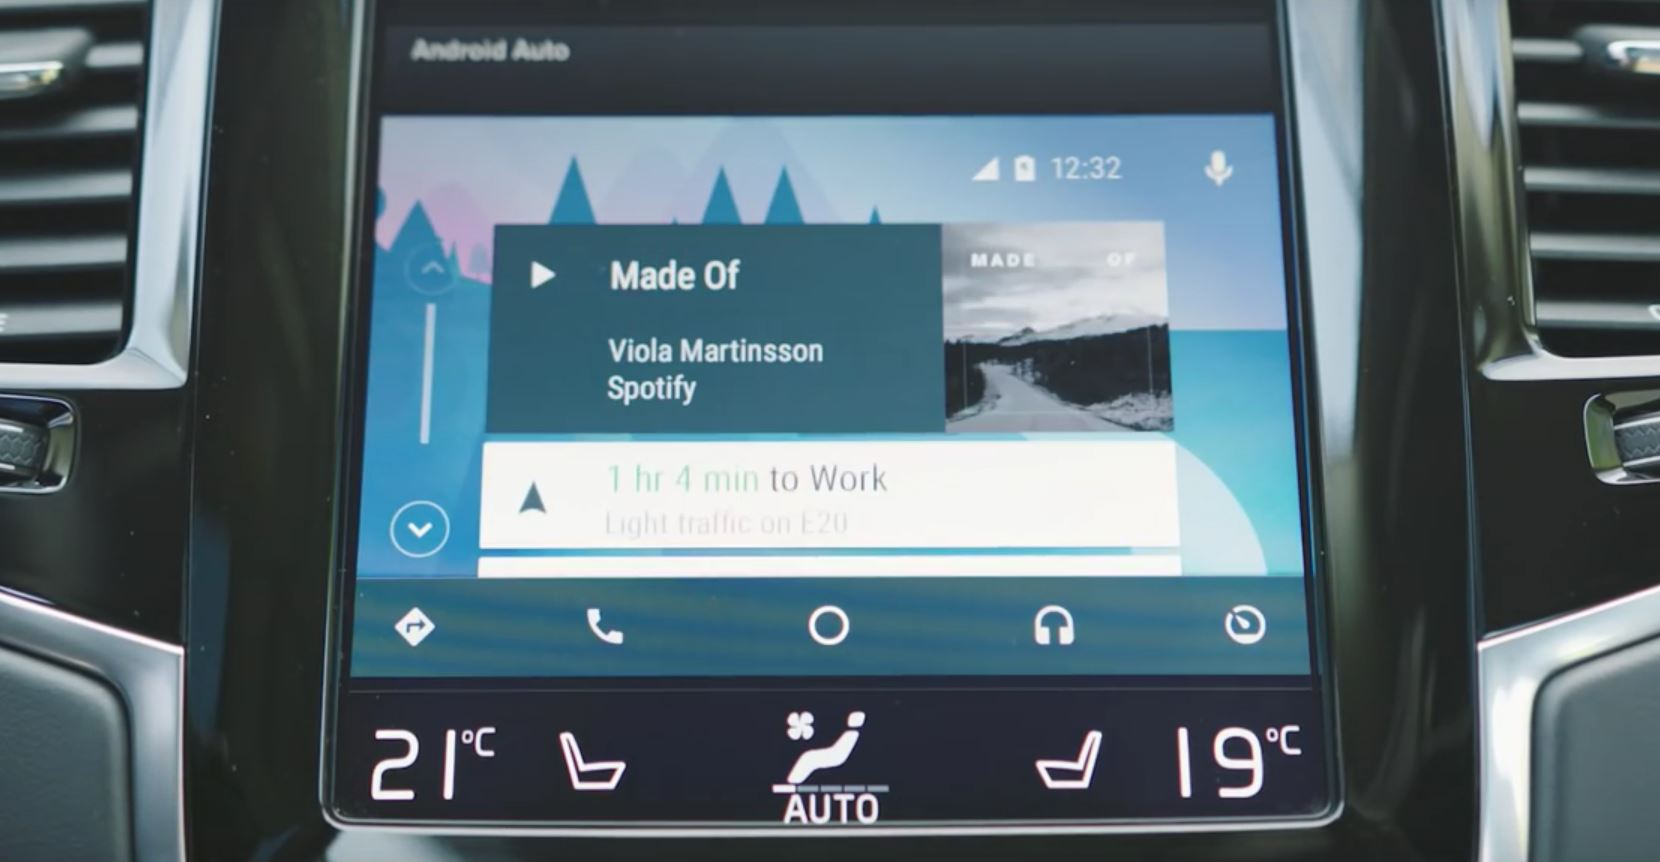 Connectivity features include apple carplay and android auto - Connectivity Features Include Apple Carplay And Android Auto 29